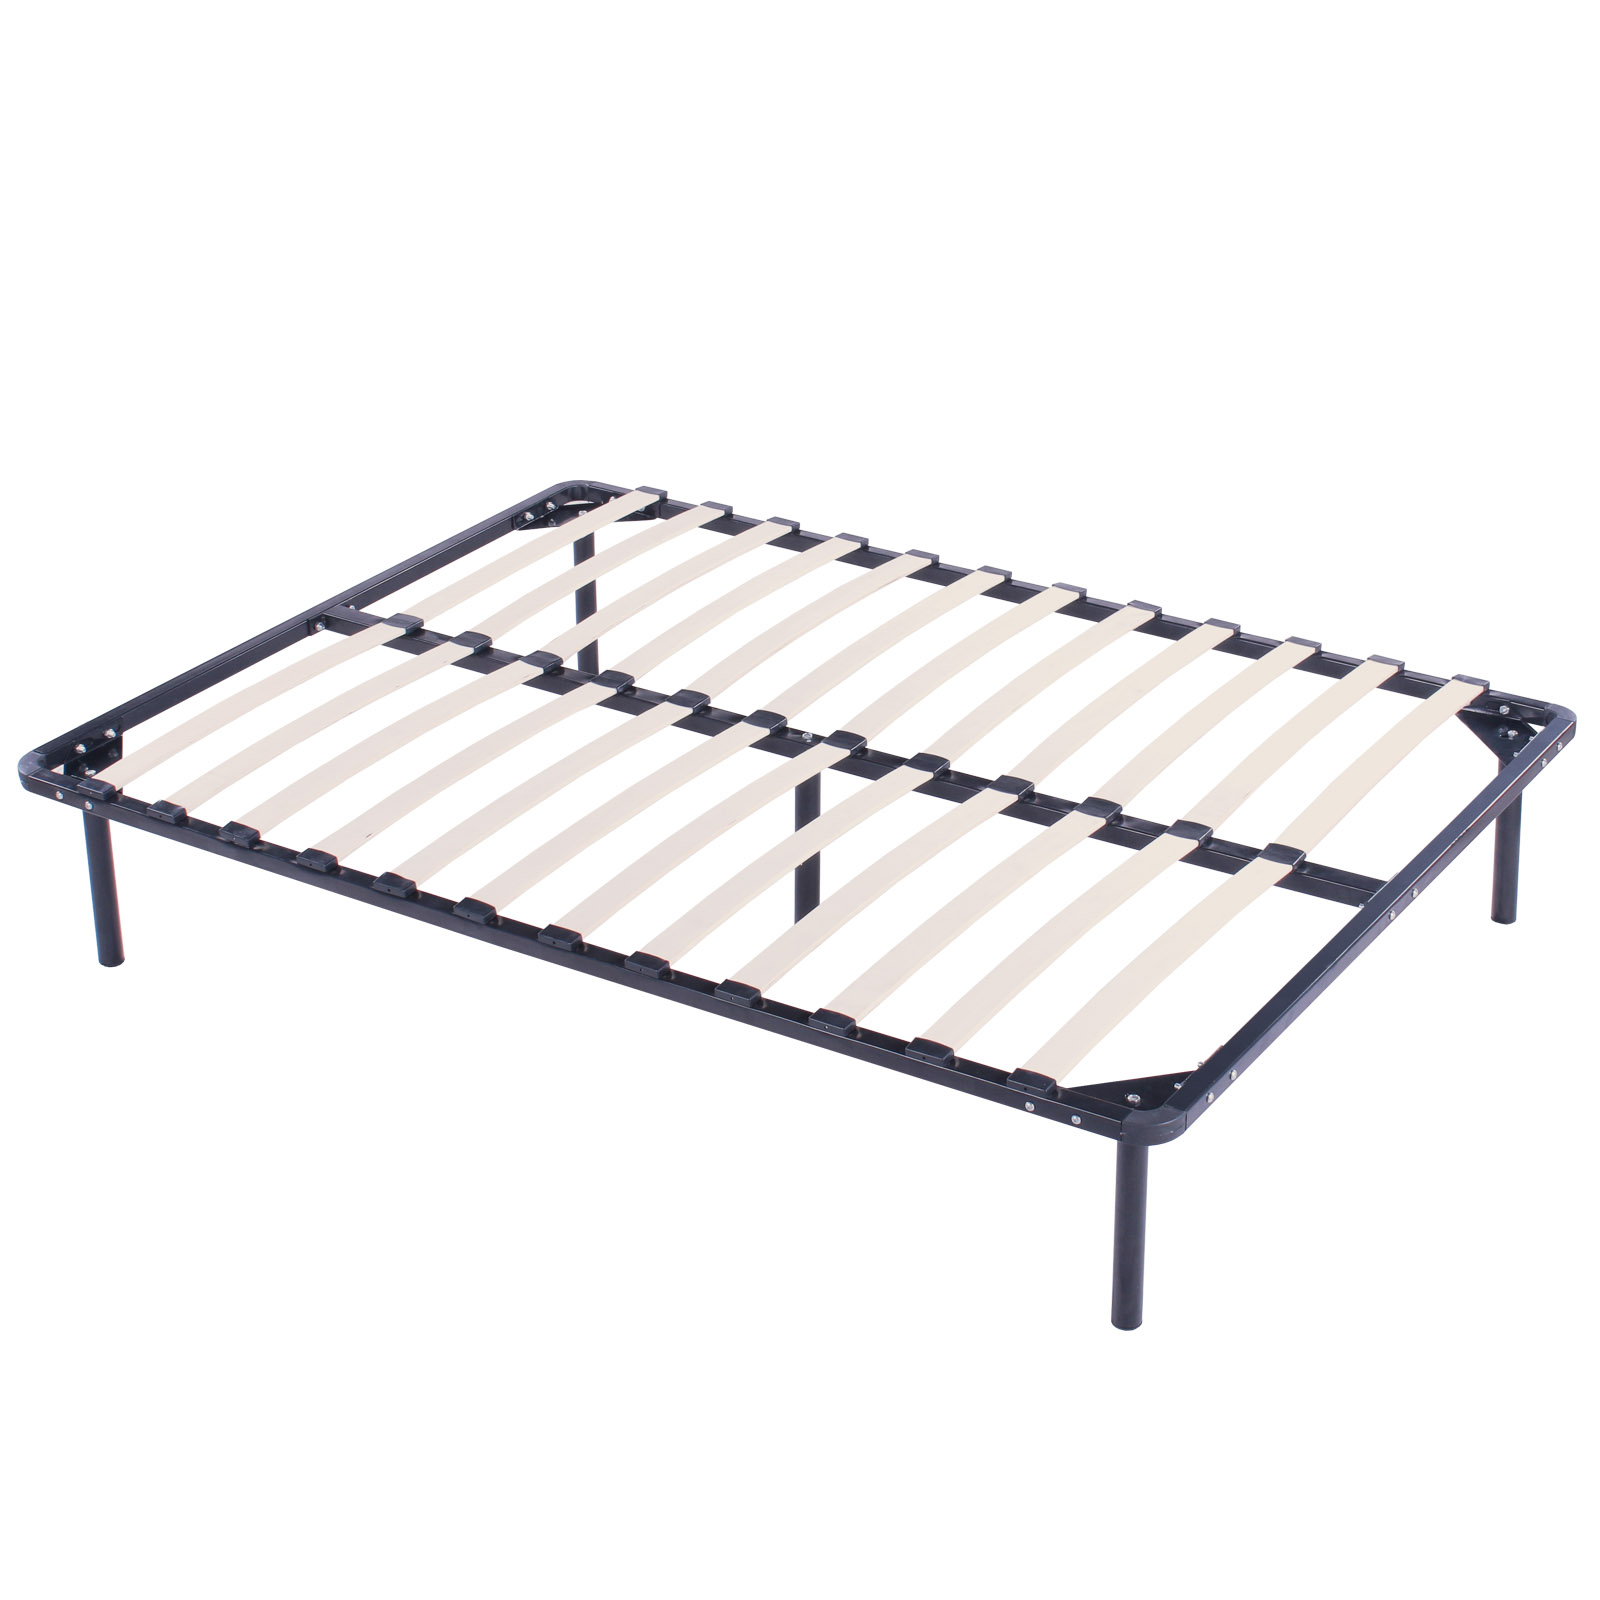 Wood slats metal bed frame twin size sturdy foundation Metal bed frame twin